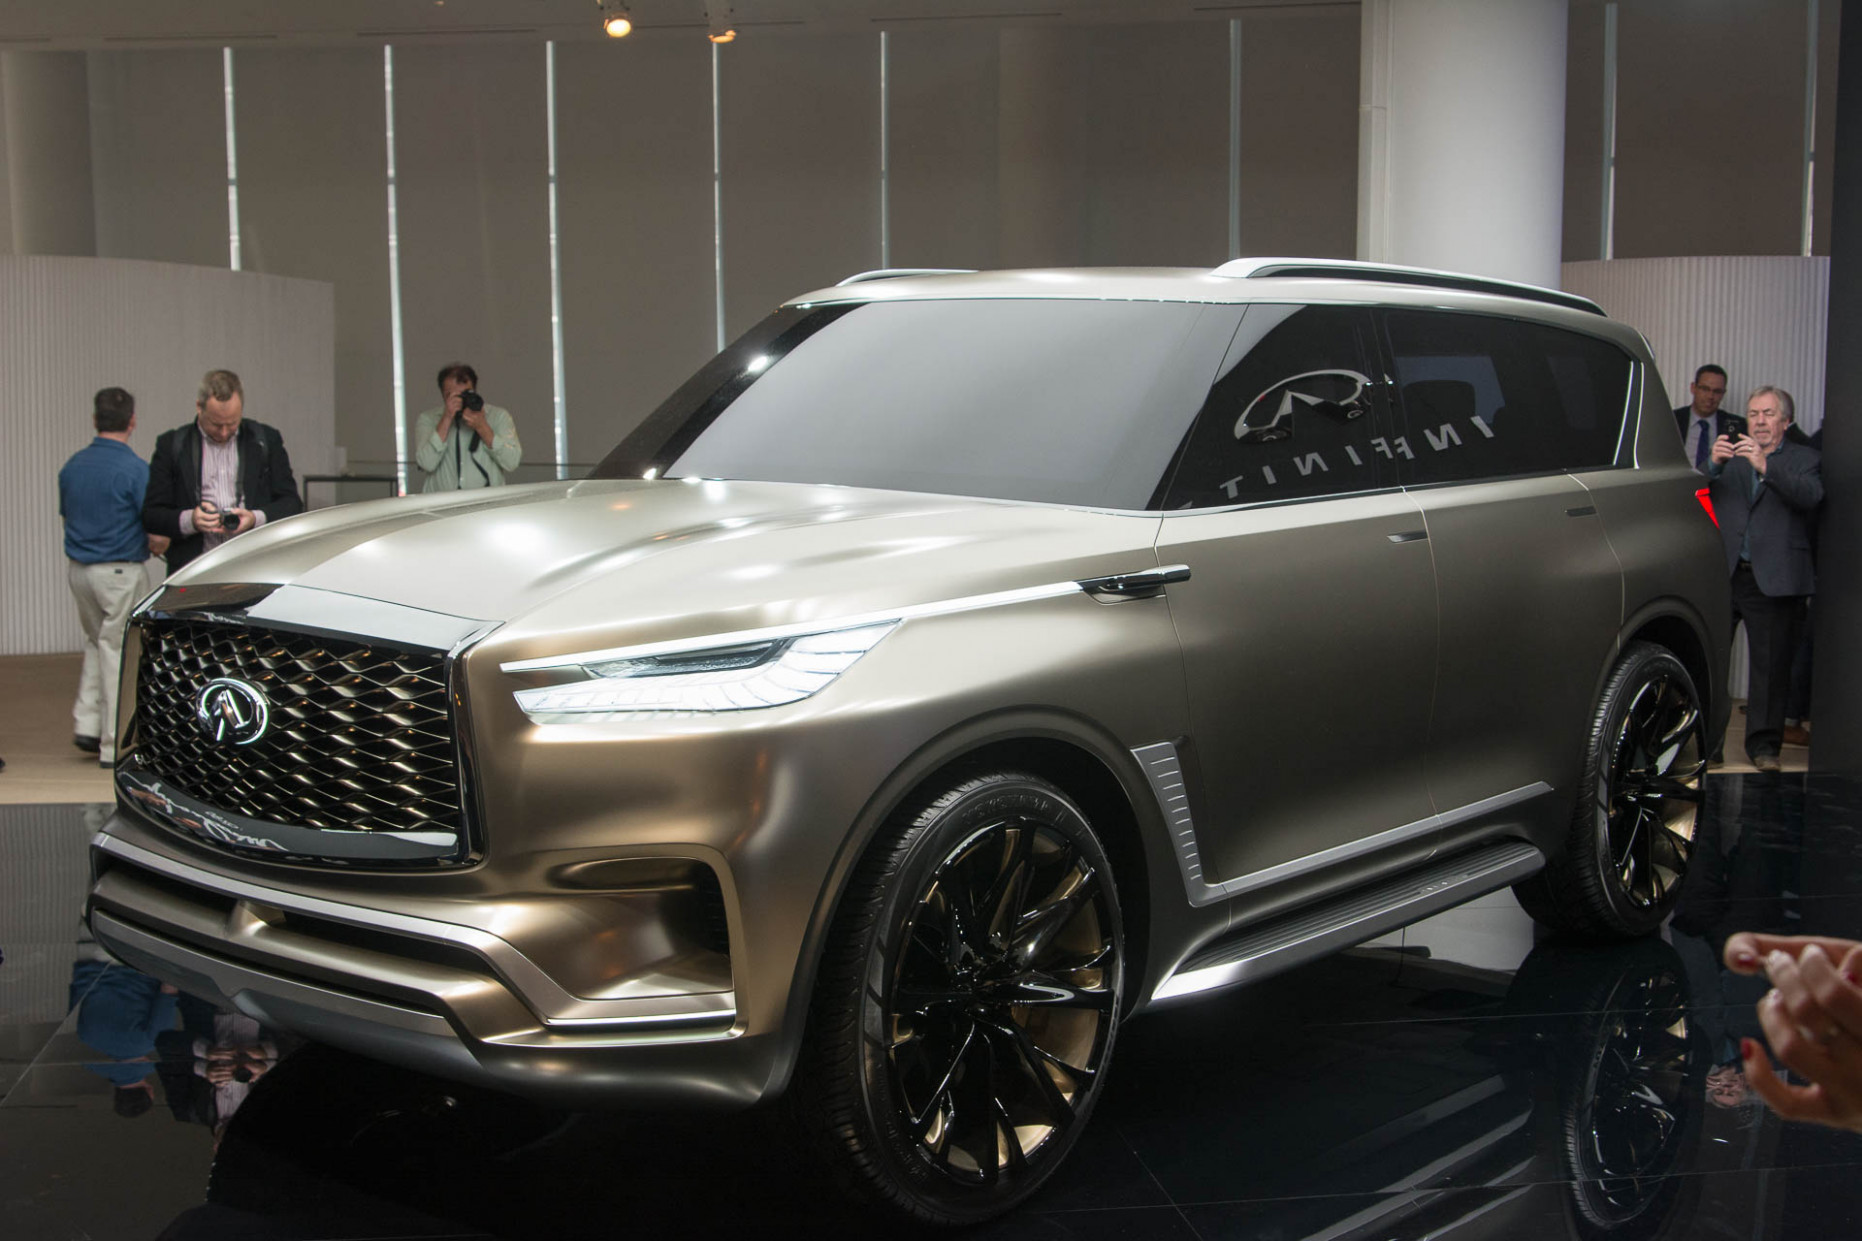 First Drive When Does The 2022 Infiniti Qx80 Come Out